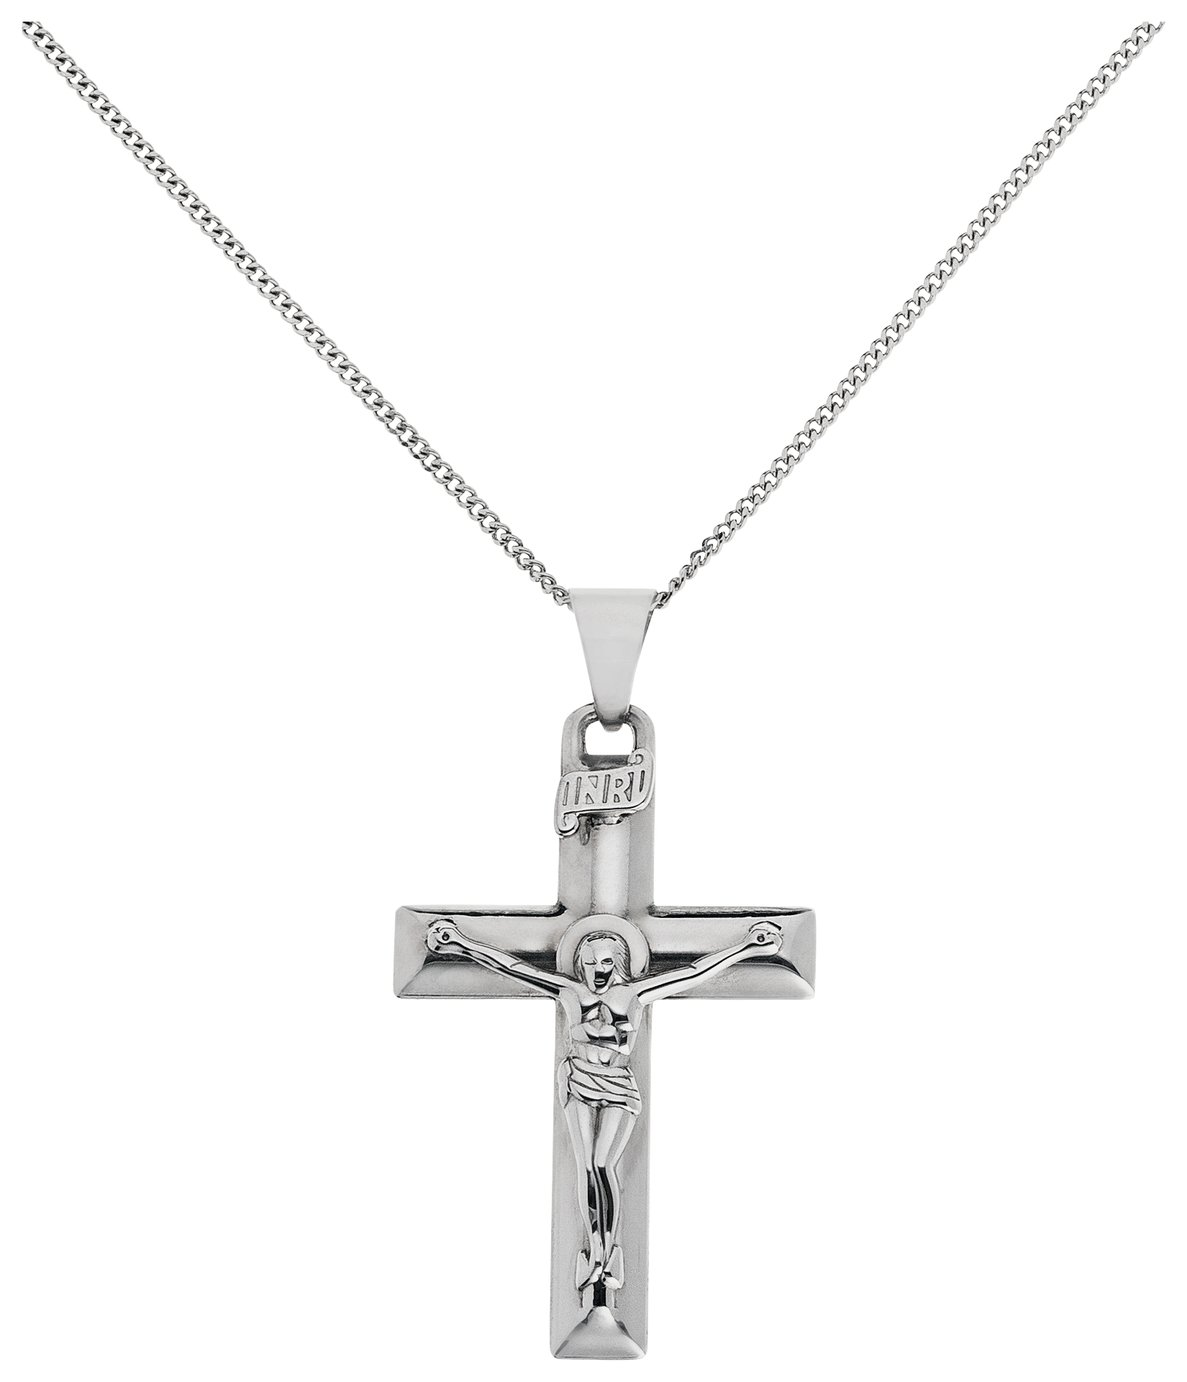 Image of Sterling Silver - Large Crucifix Pendant.